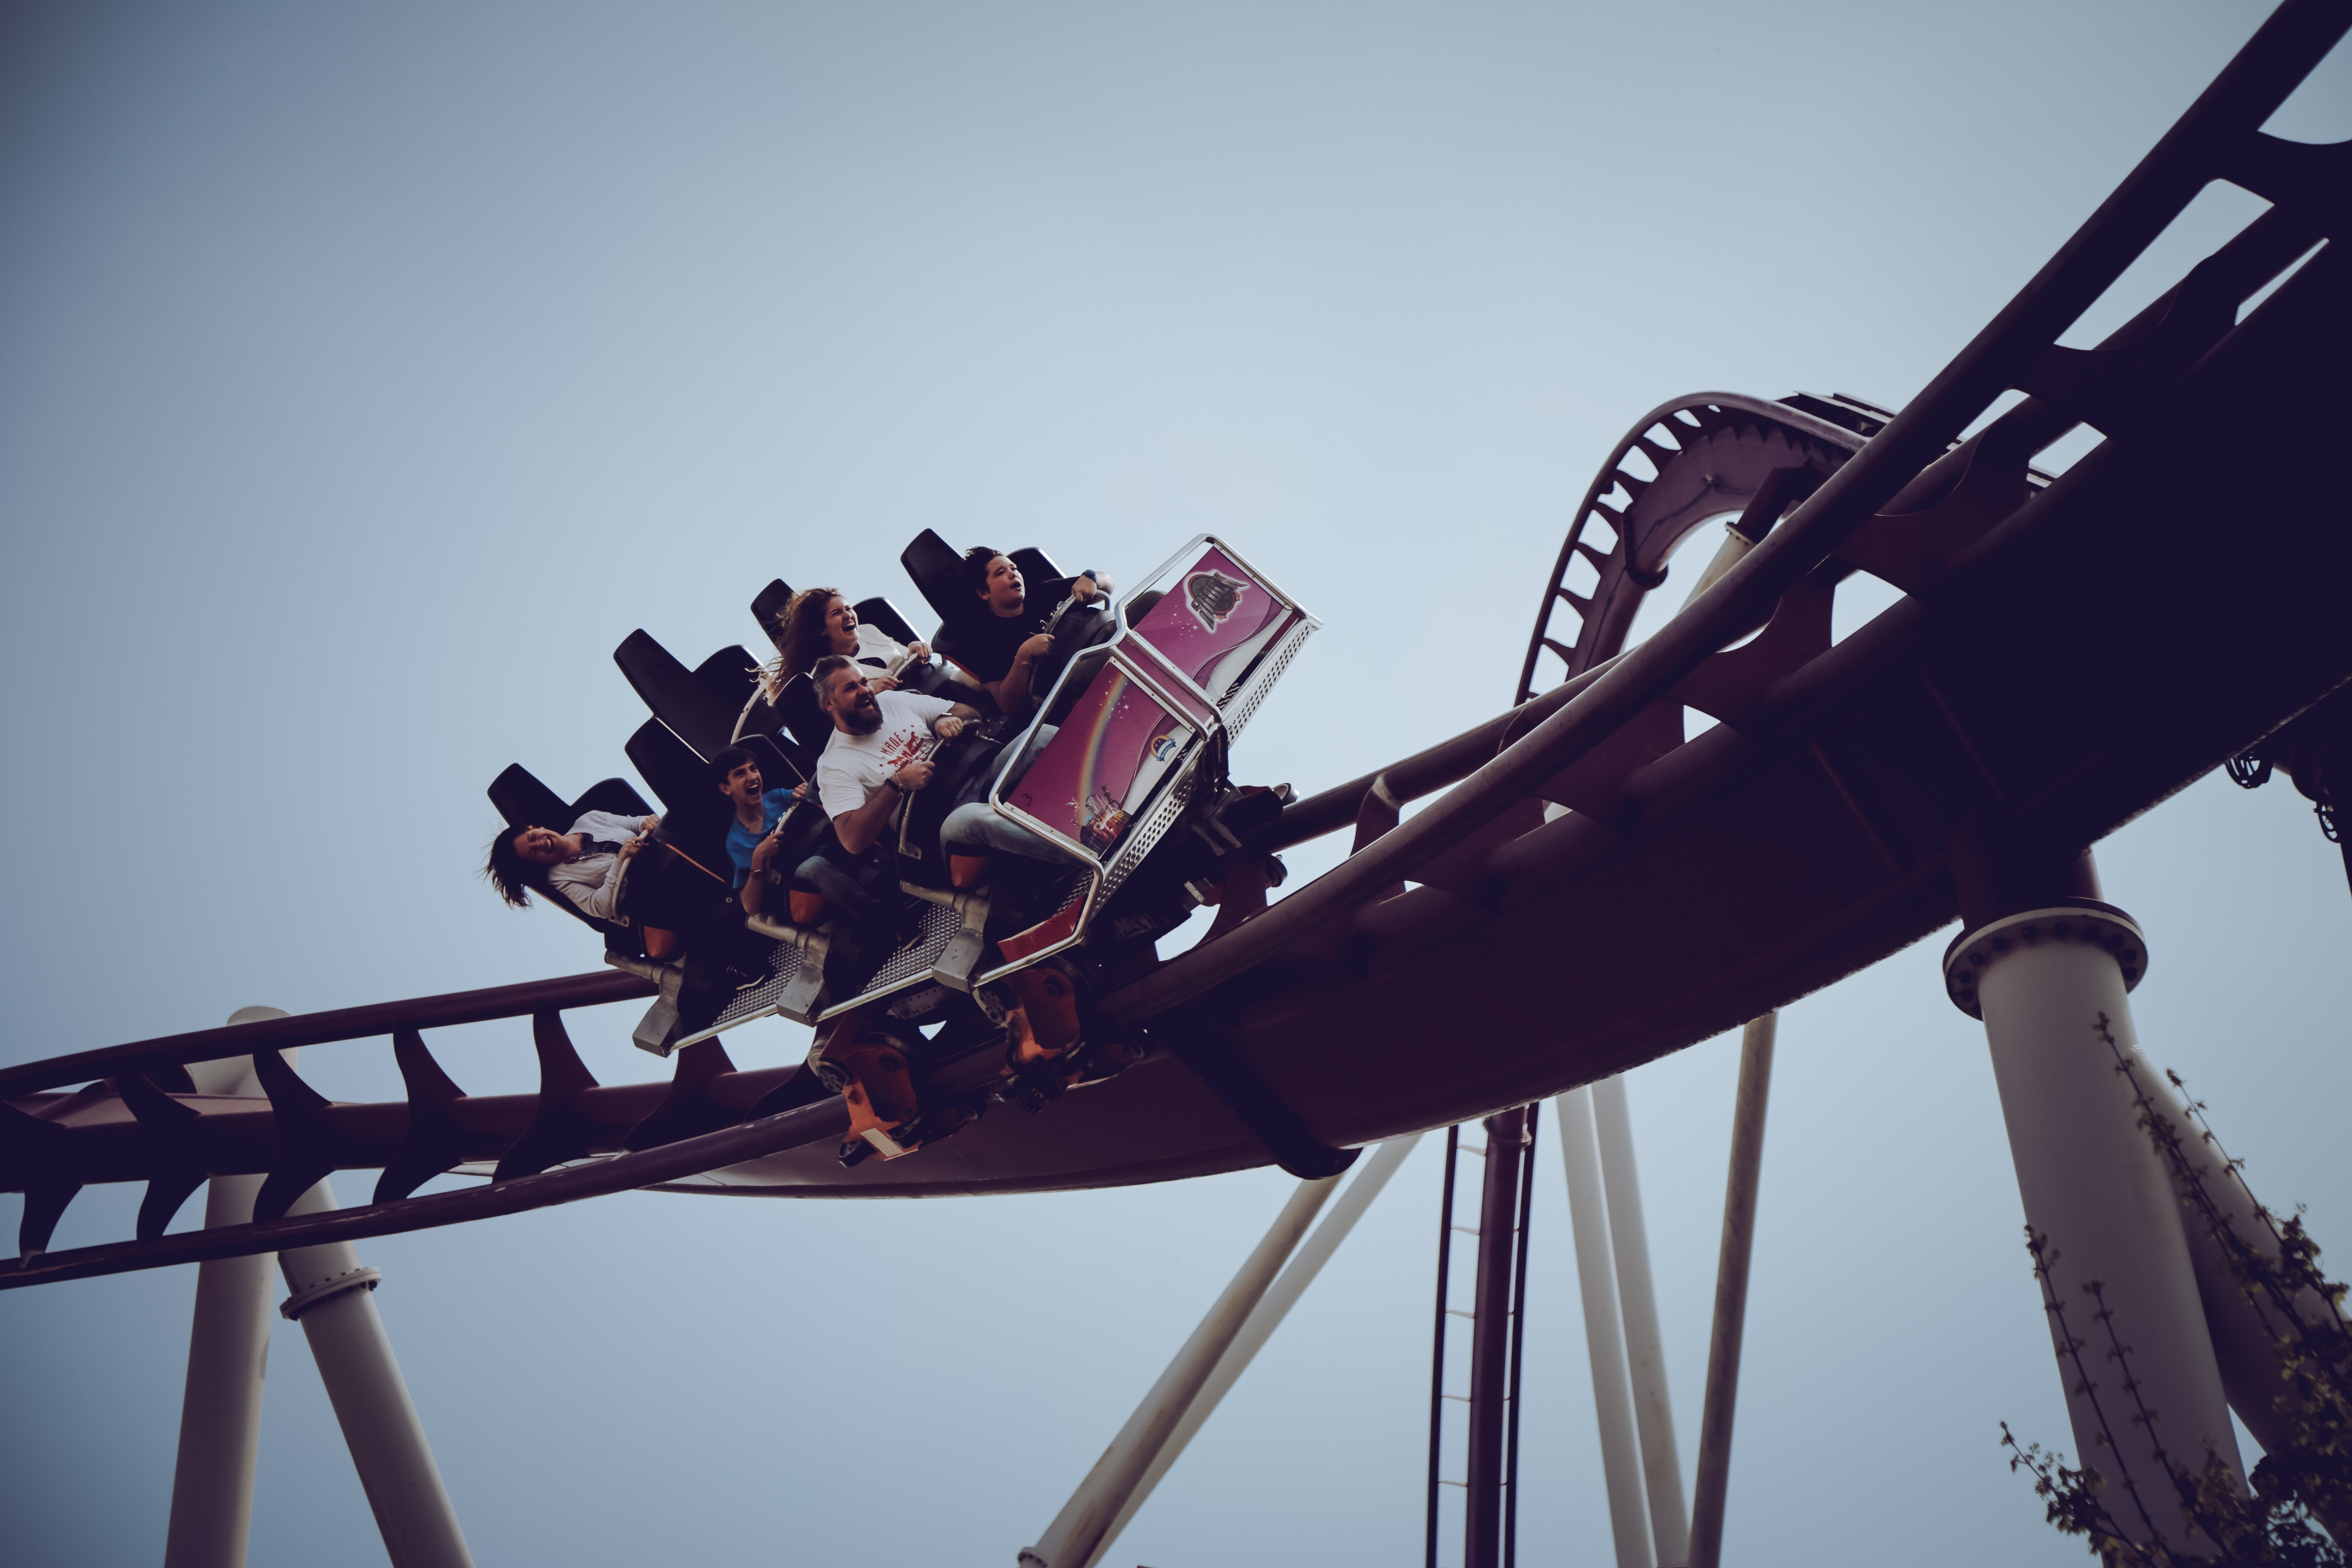 People enjoying themselves on a small rollercoaster in an amusement park